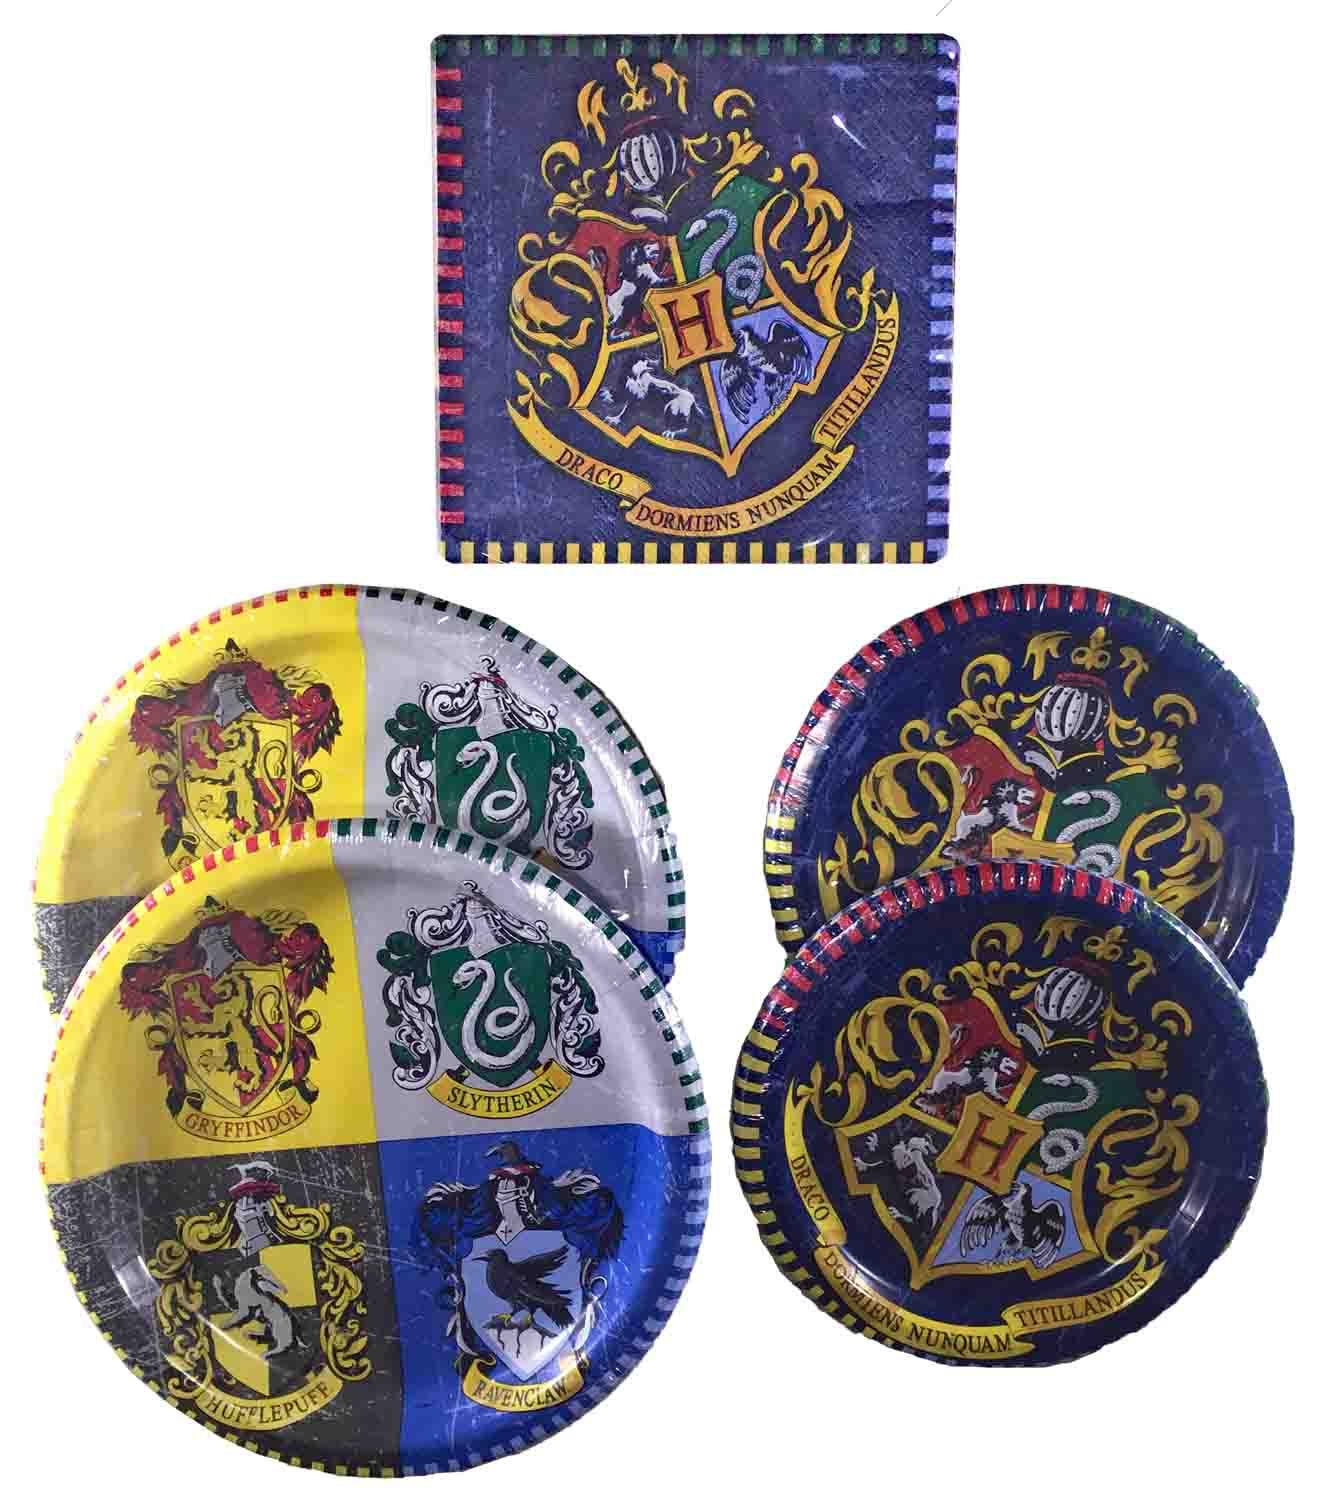 Harry Potter Party Supplies Childrens Birthday Party Tableware Pack And Adults For 16 Bundle - Includes 16 Dinner Plates, 16 Dessert Plates, and 16 Luncheon Napkins by Harry Potter